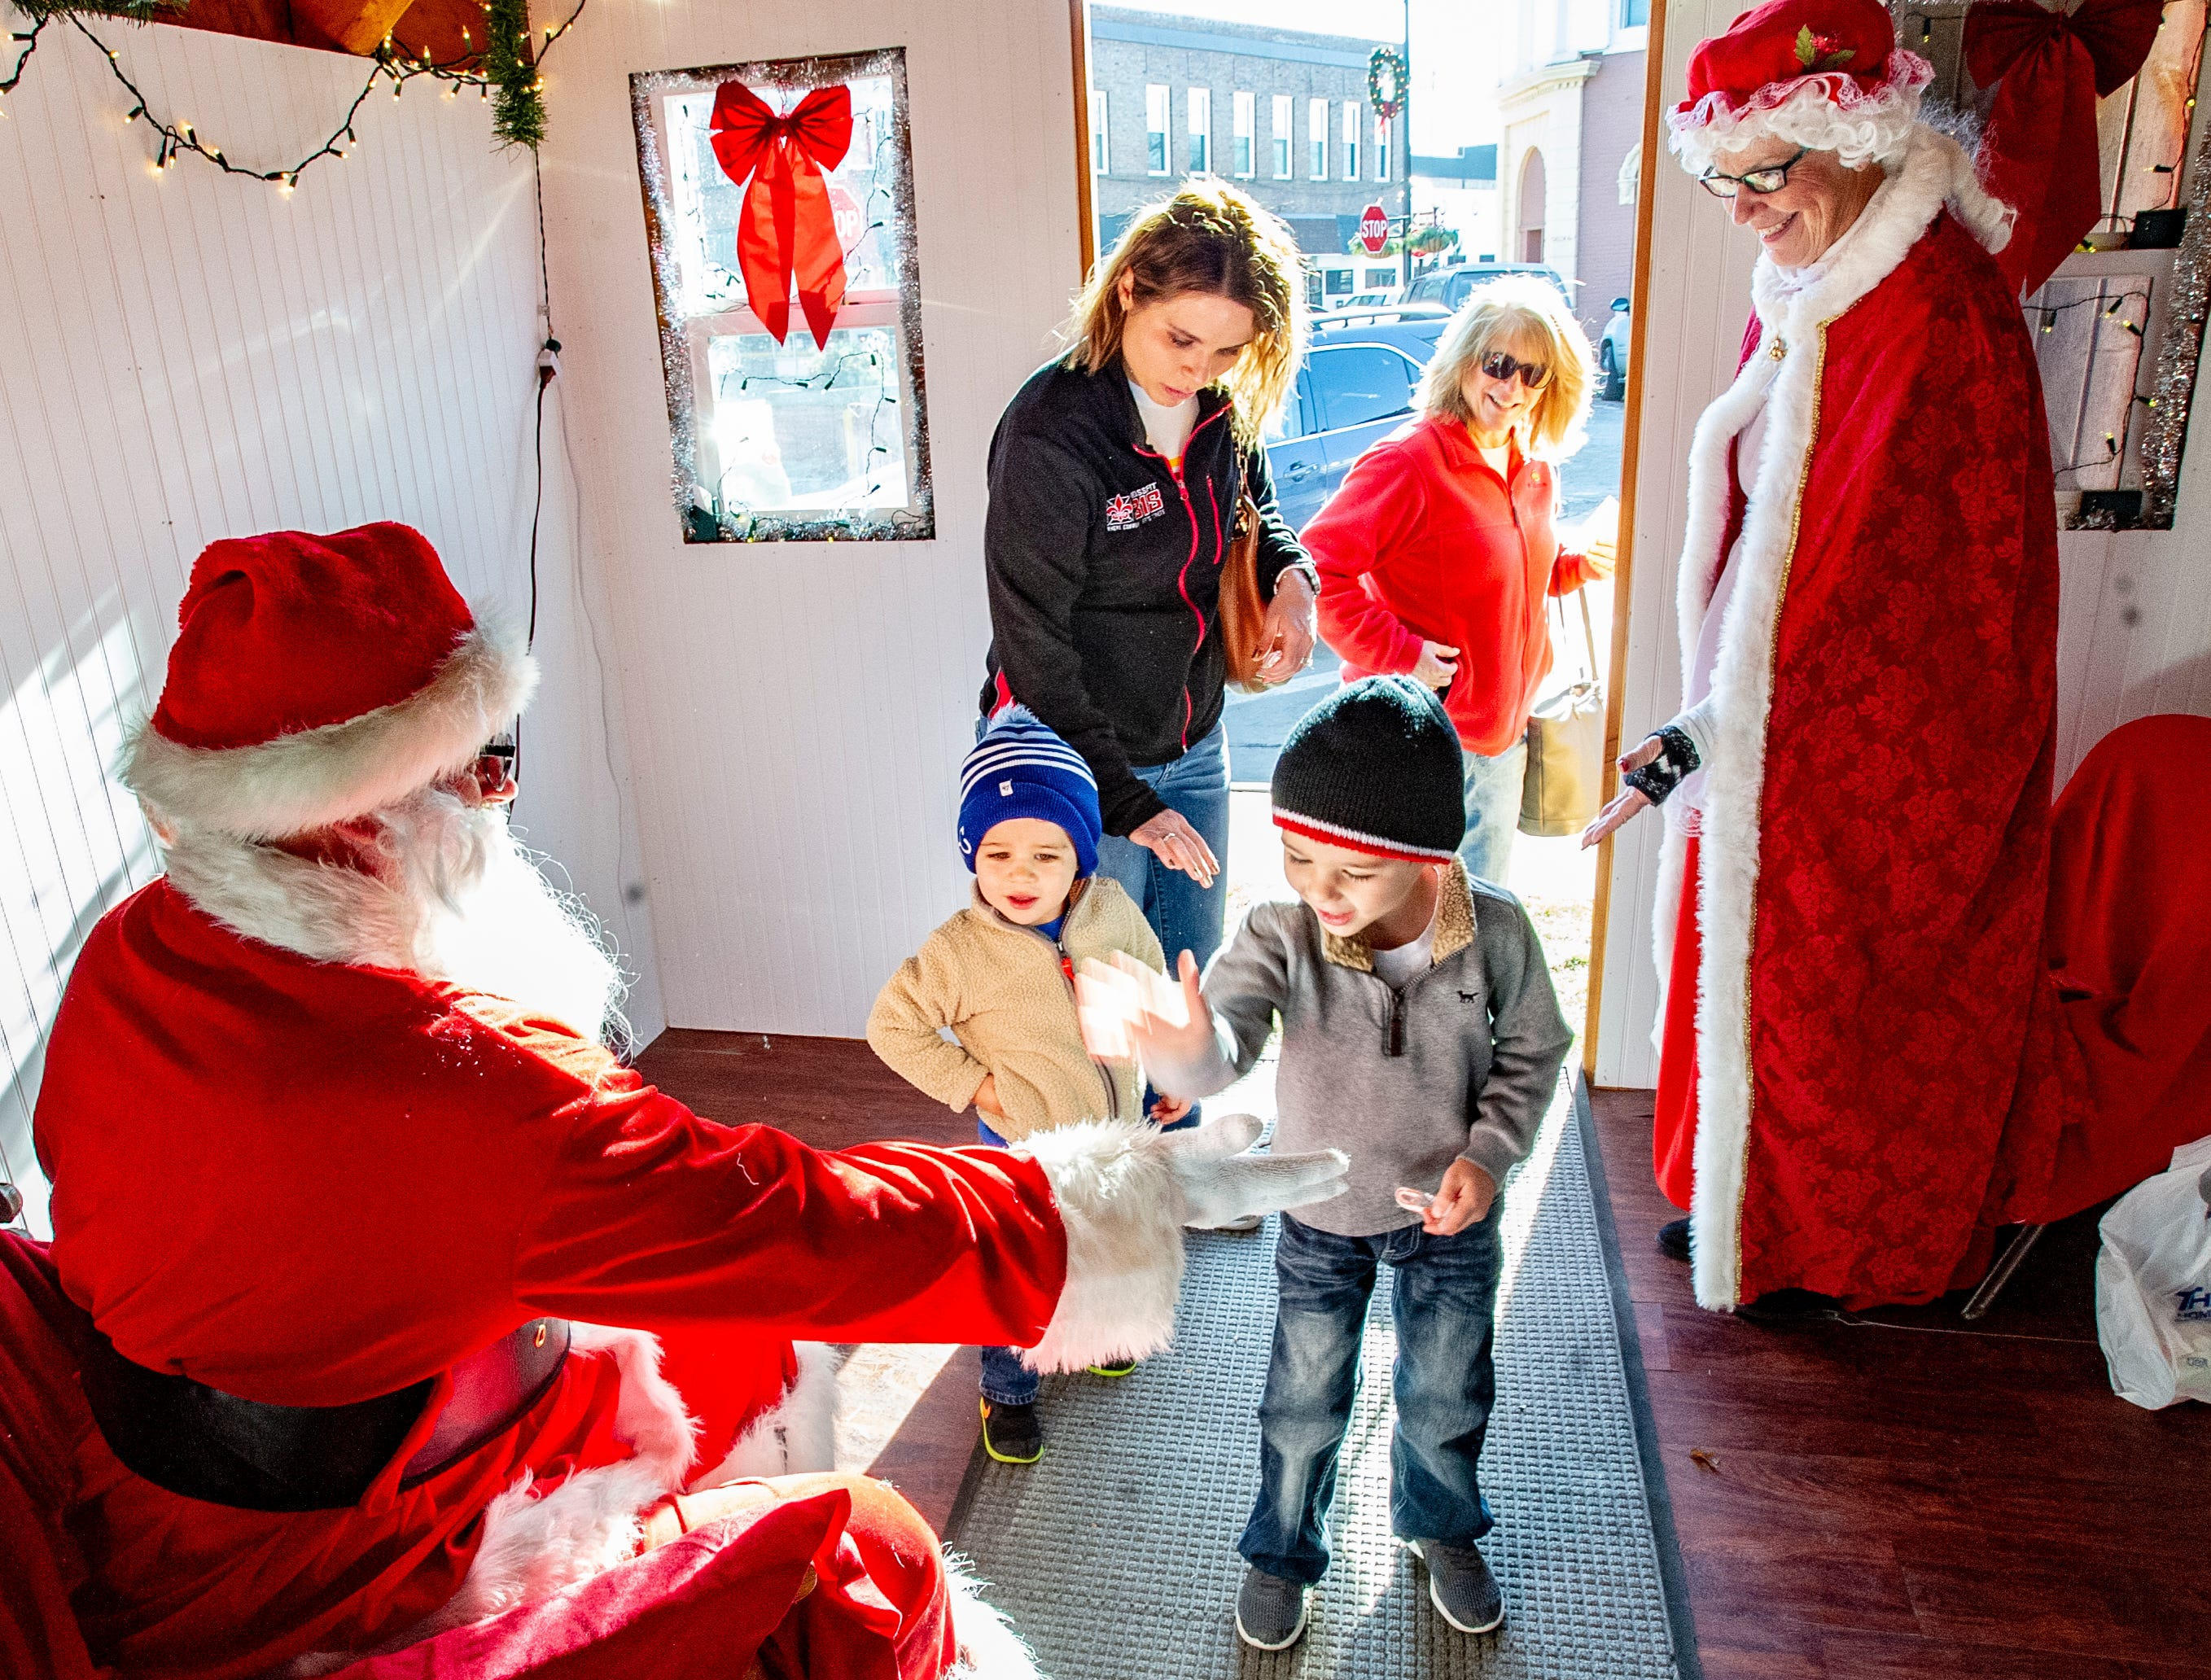 Ashley Ripley, of Indianola and her two boys, Simon, 2, and Jordan, 5, and the boys' grandmother, Julia Page of Osceola, visit with Santa and Mrs. Claus at the Santa House in downtown Indianola Nov. 24, 2018.